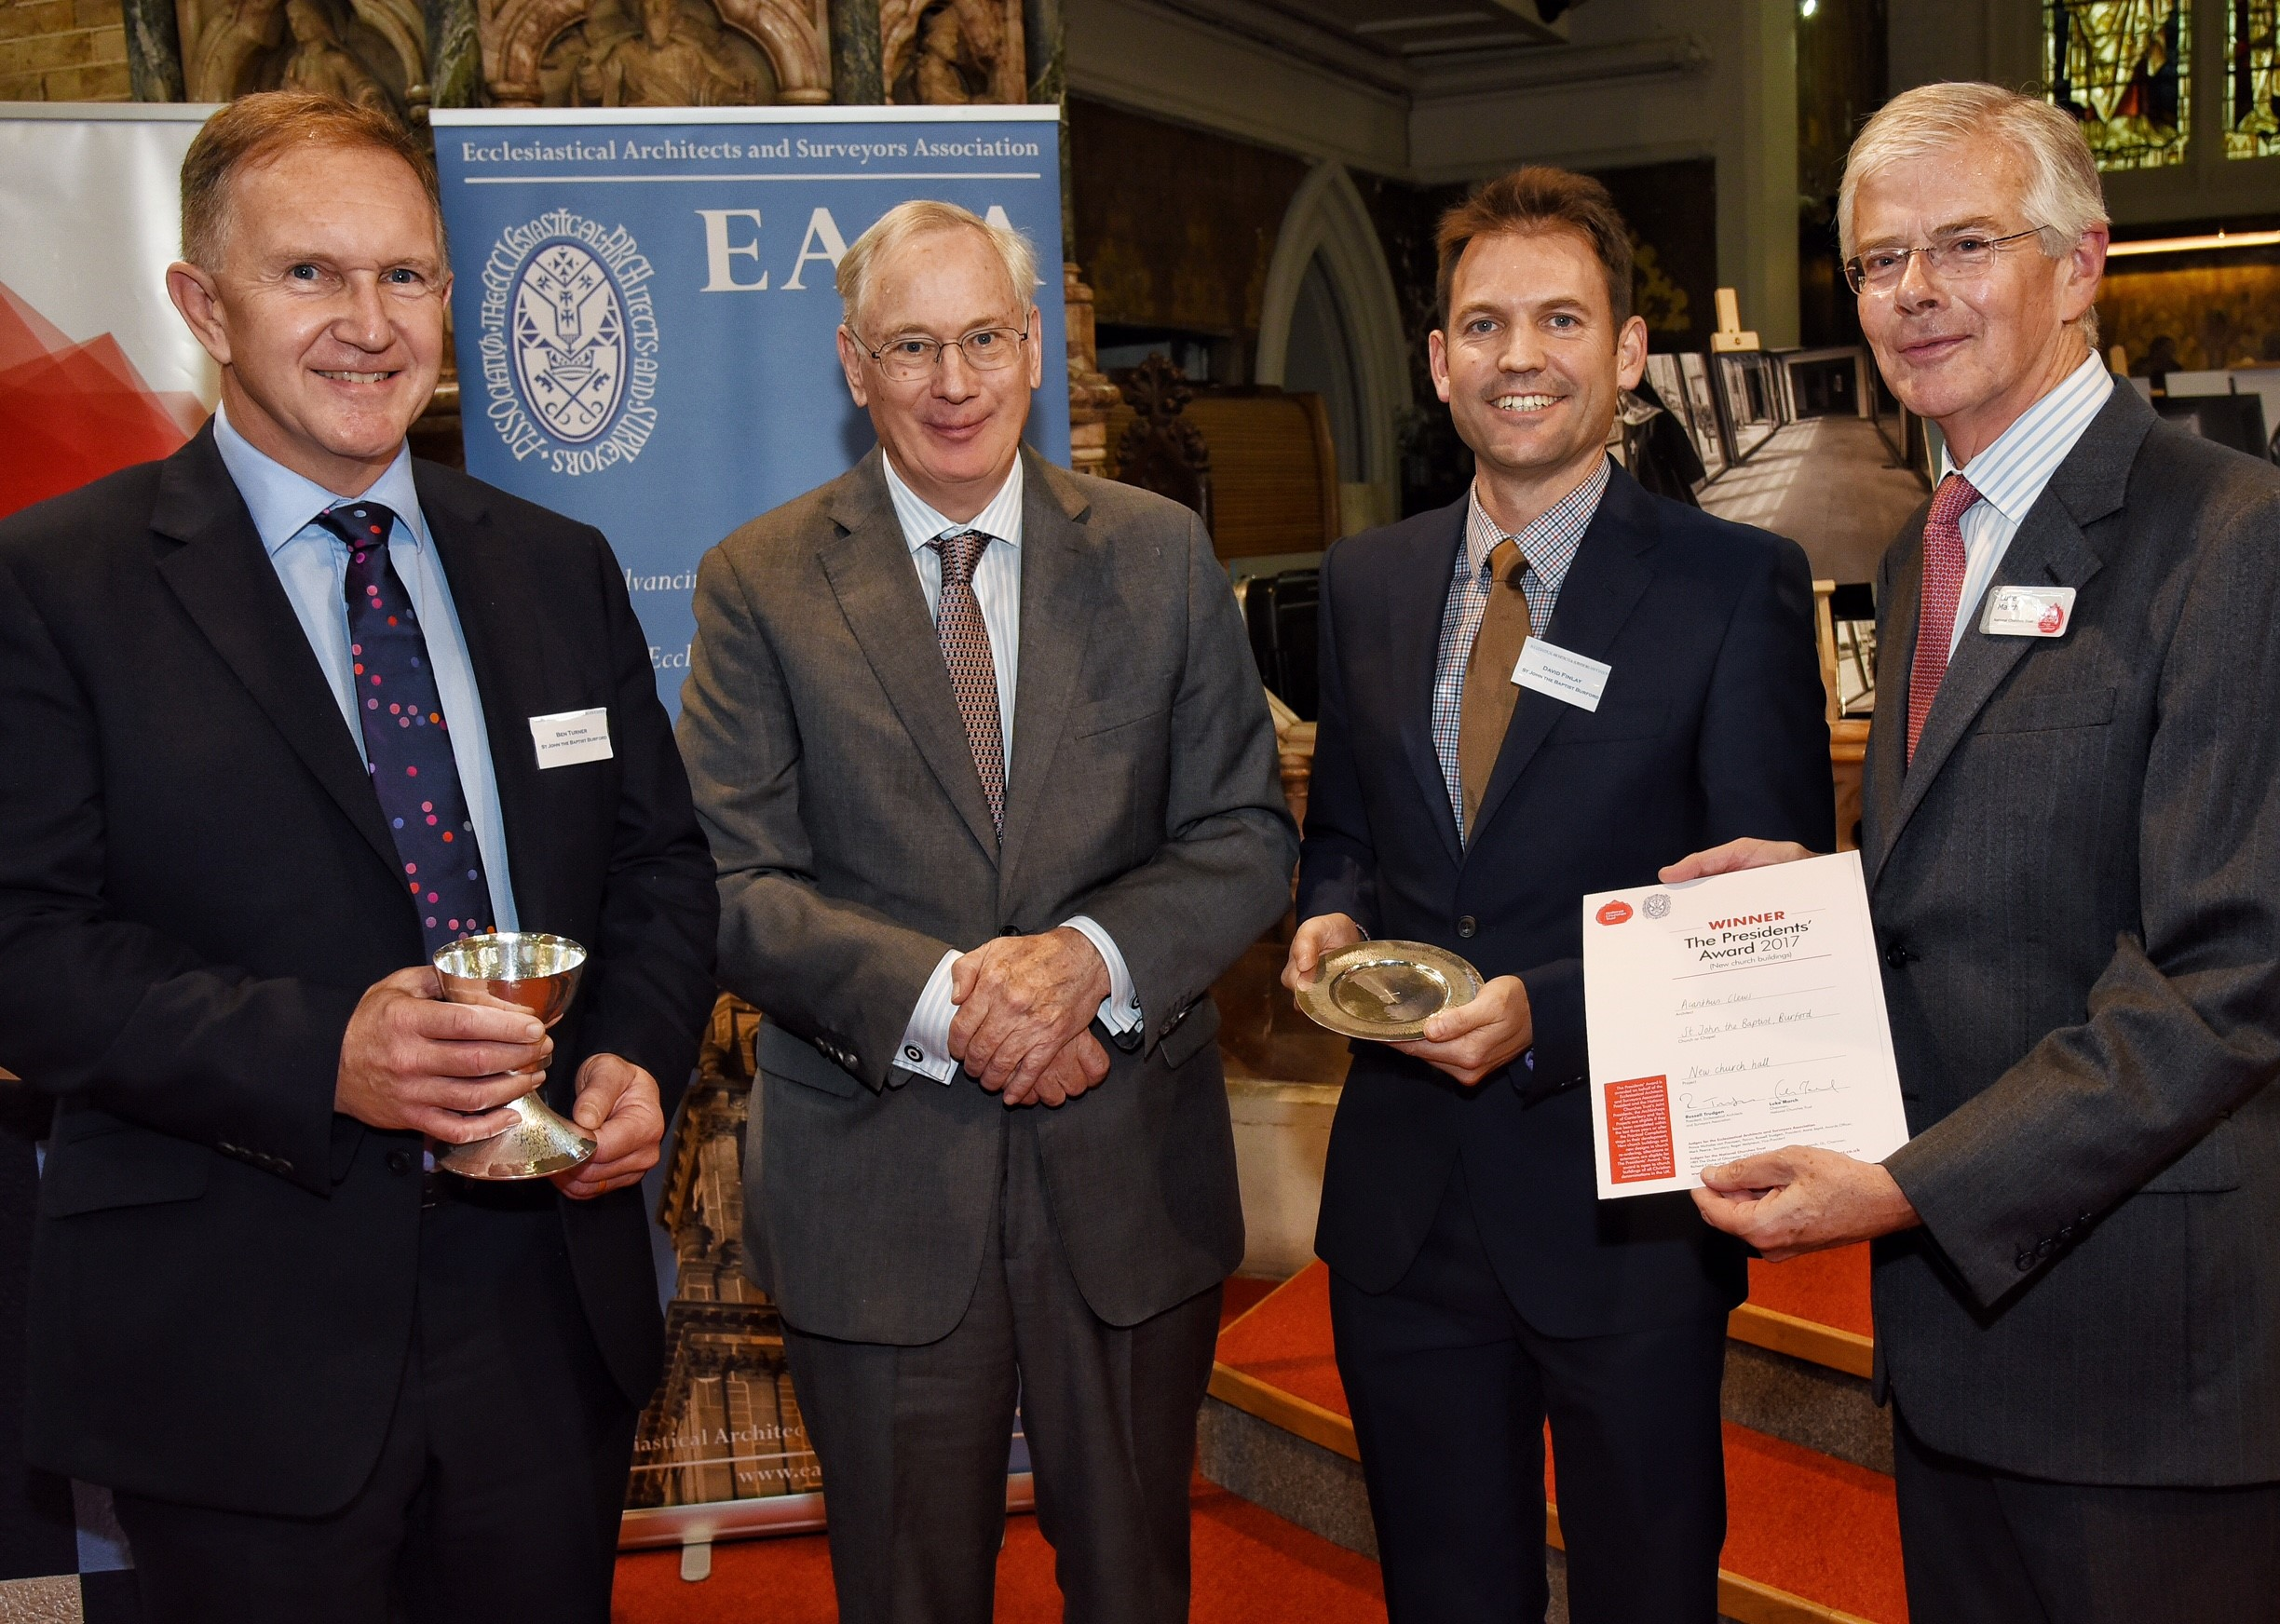 St John the Baptist, Burford and Acanthus Clews Architects, winner of the Presidents' Award for new buildings